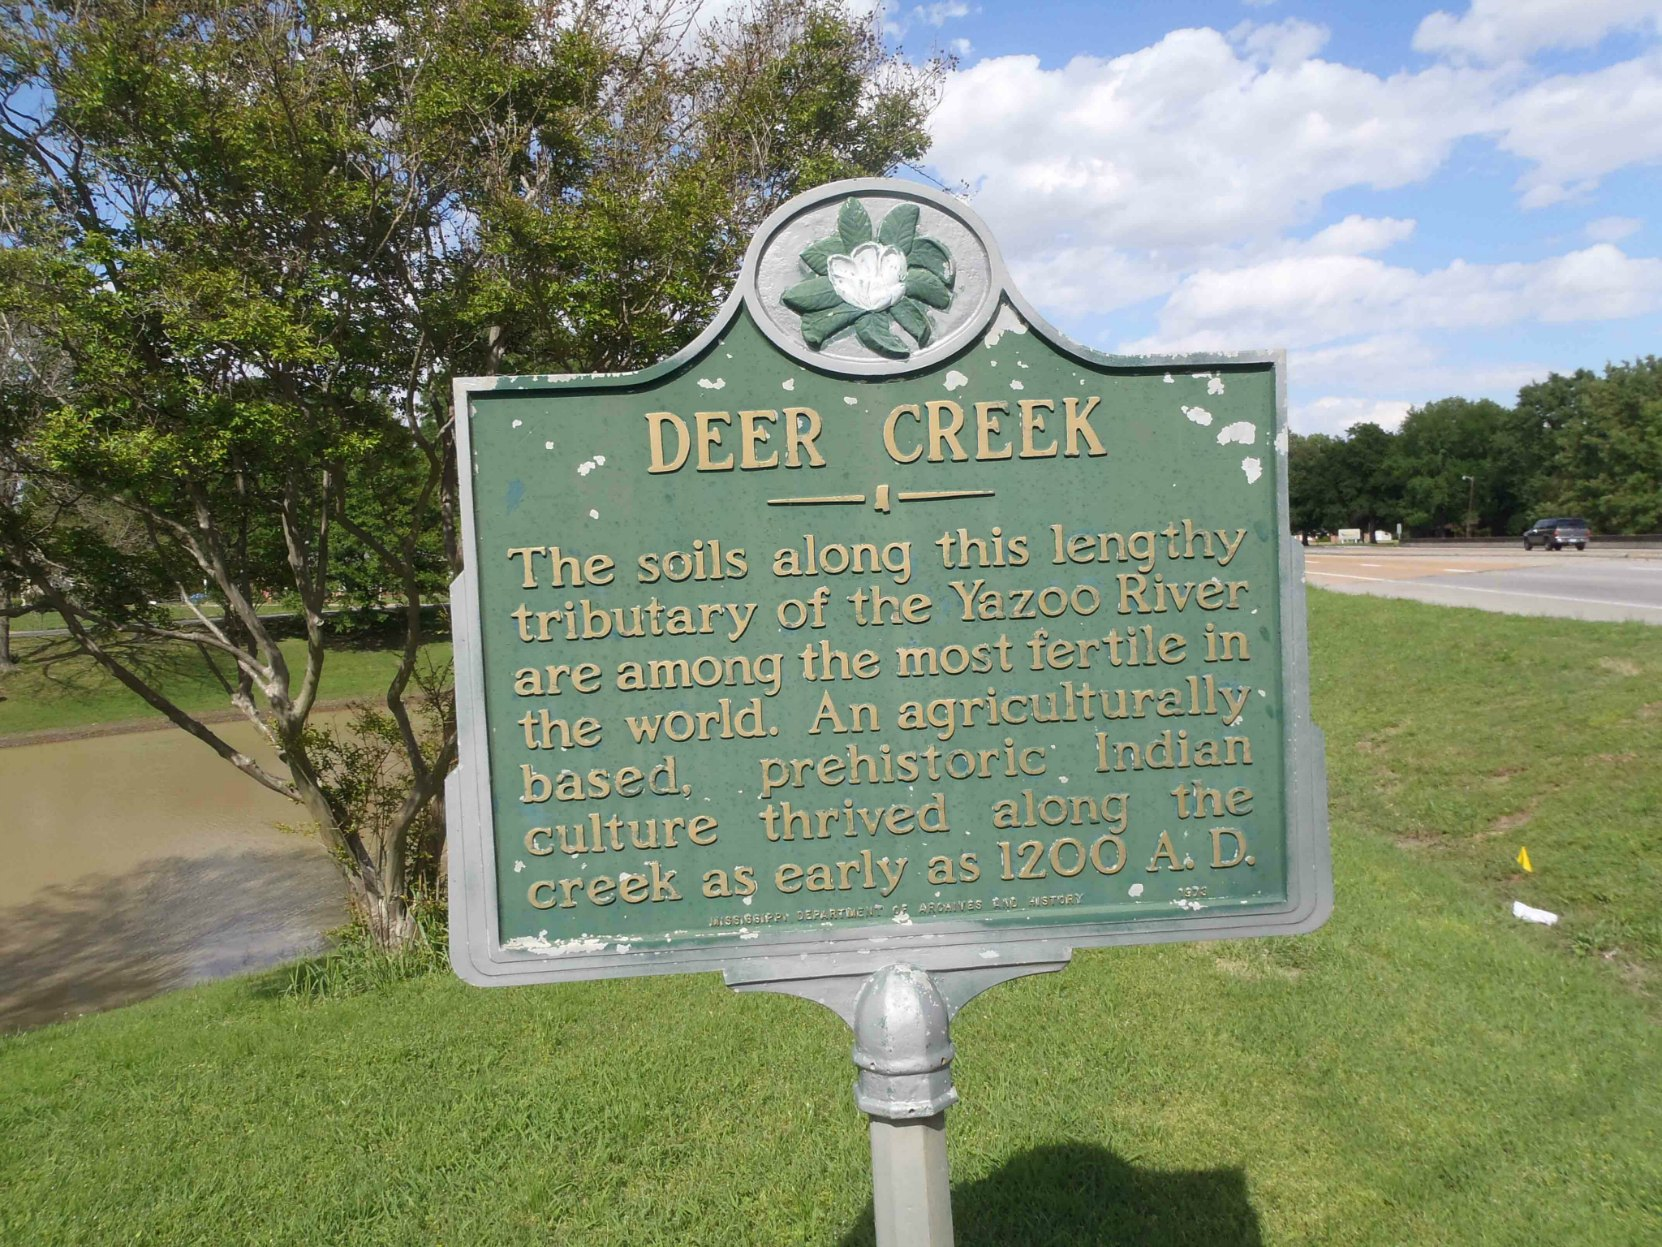 Mississippi Department of Archives & History marker for Deer Creek, near Leland, Mississippi